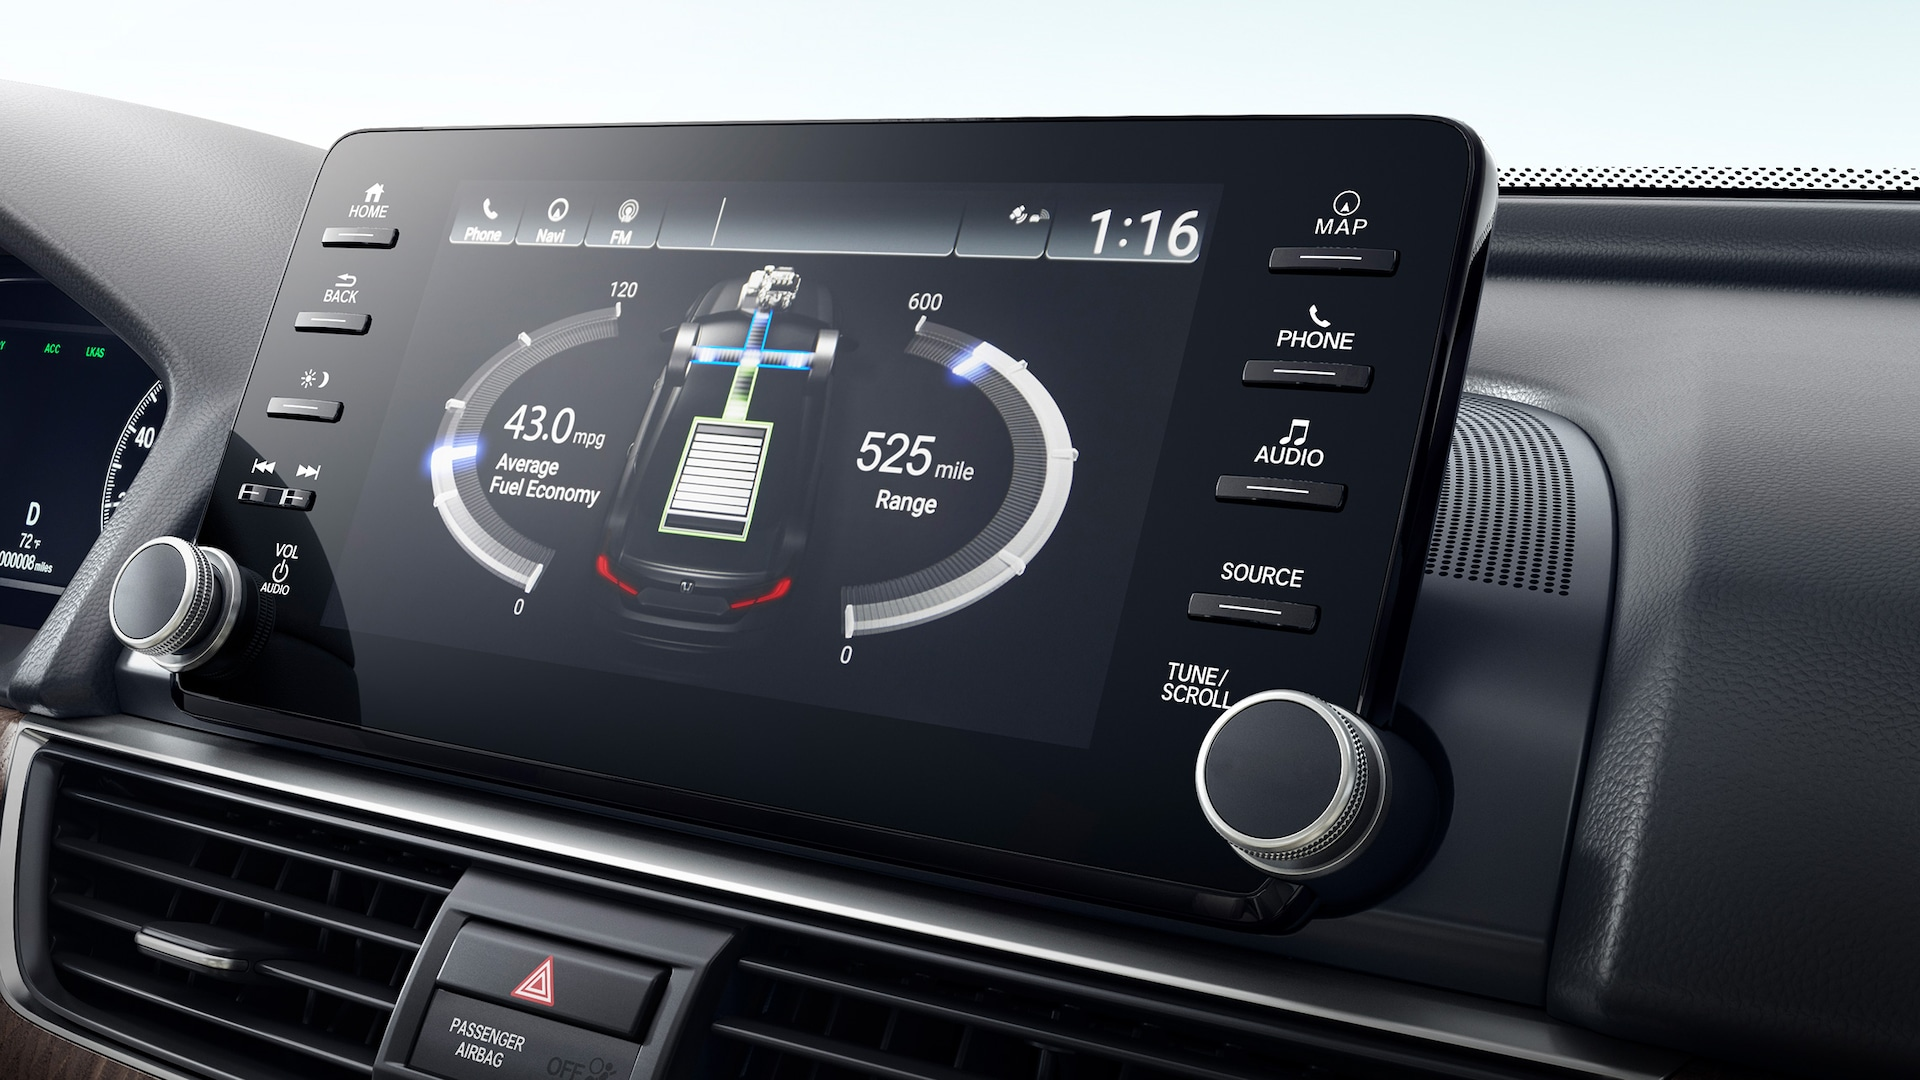 Display Audio touch-screen detail, displaying Hybrid power flow, in the 2020 Honda Accord Hybrid Touring.